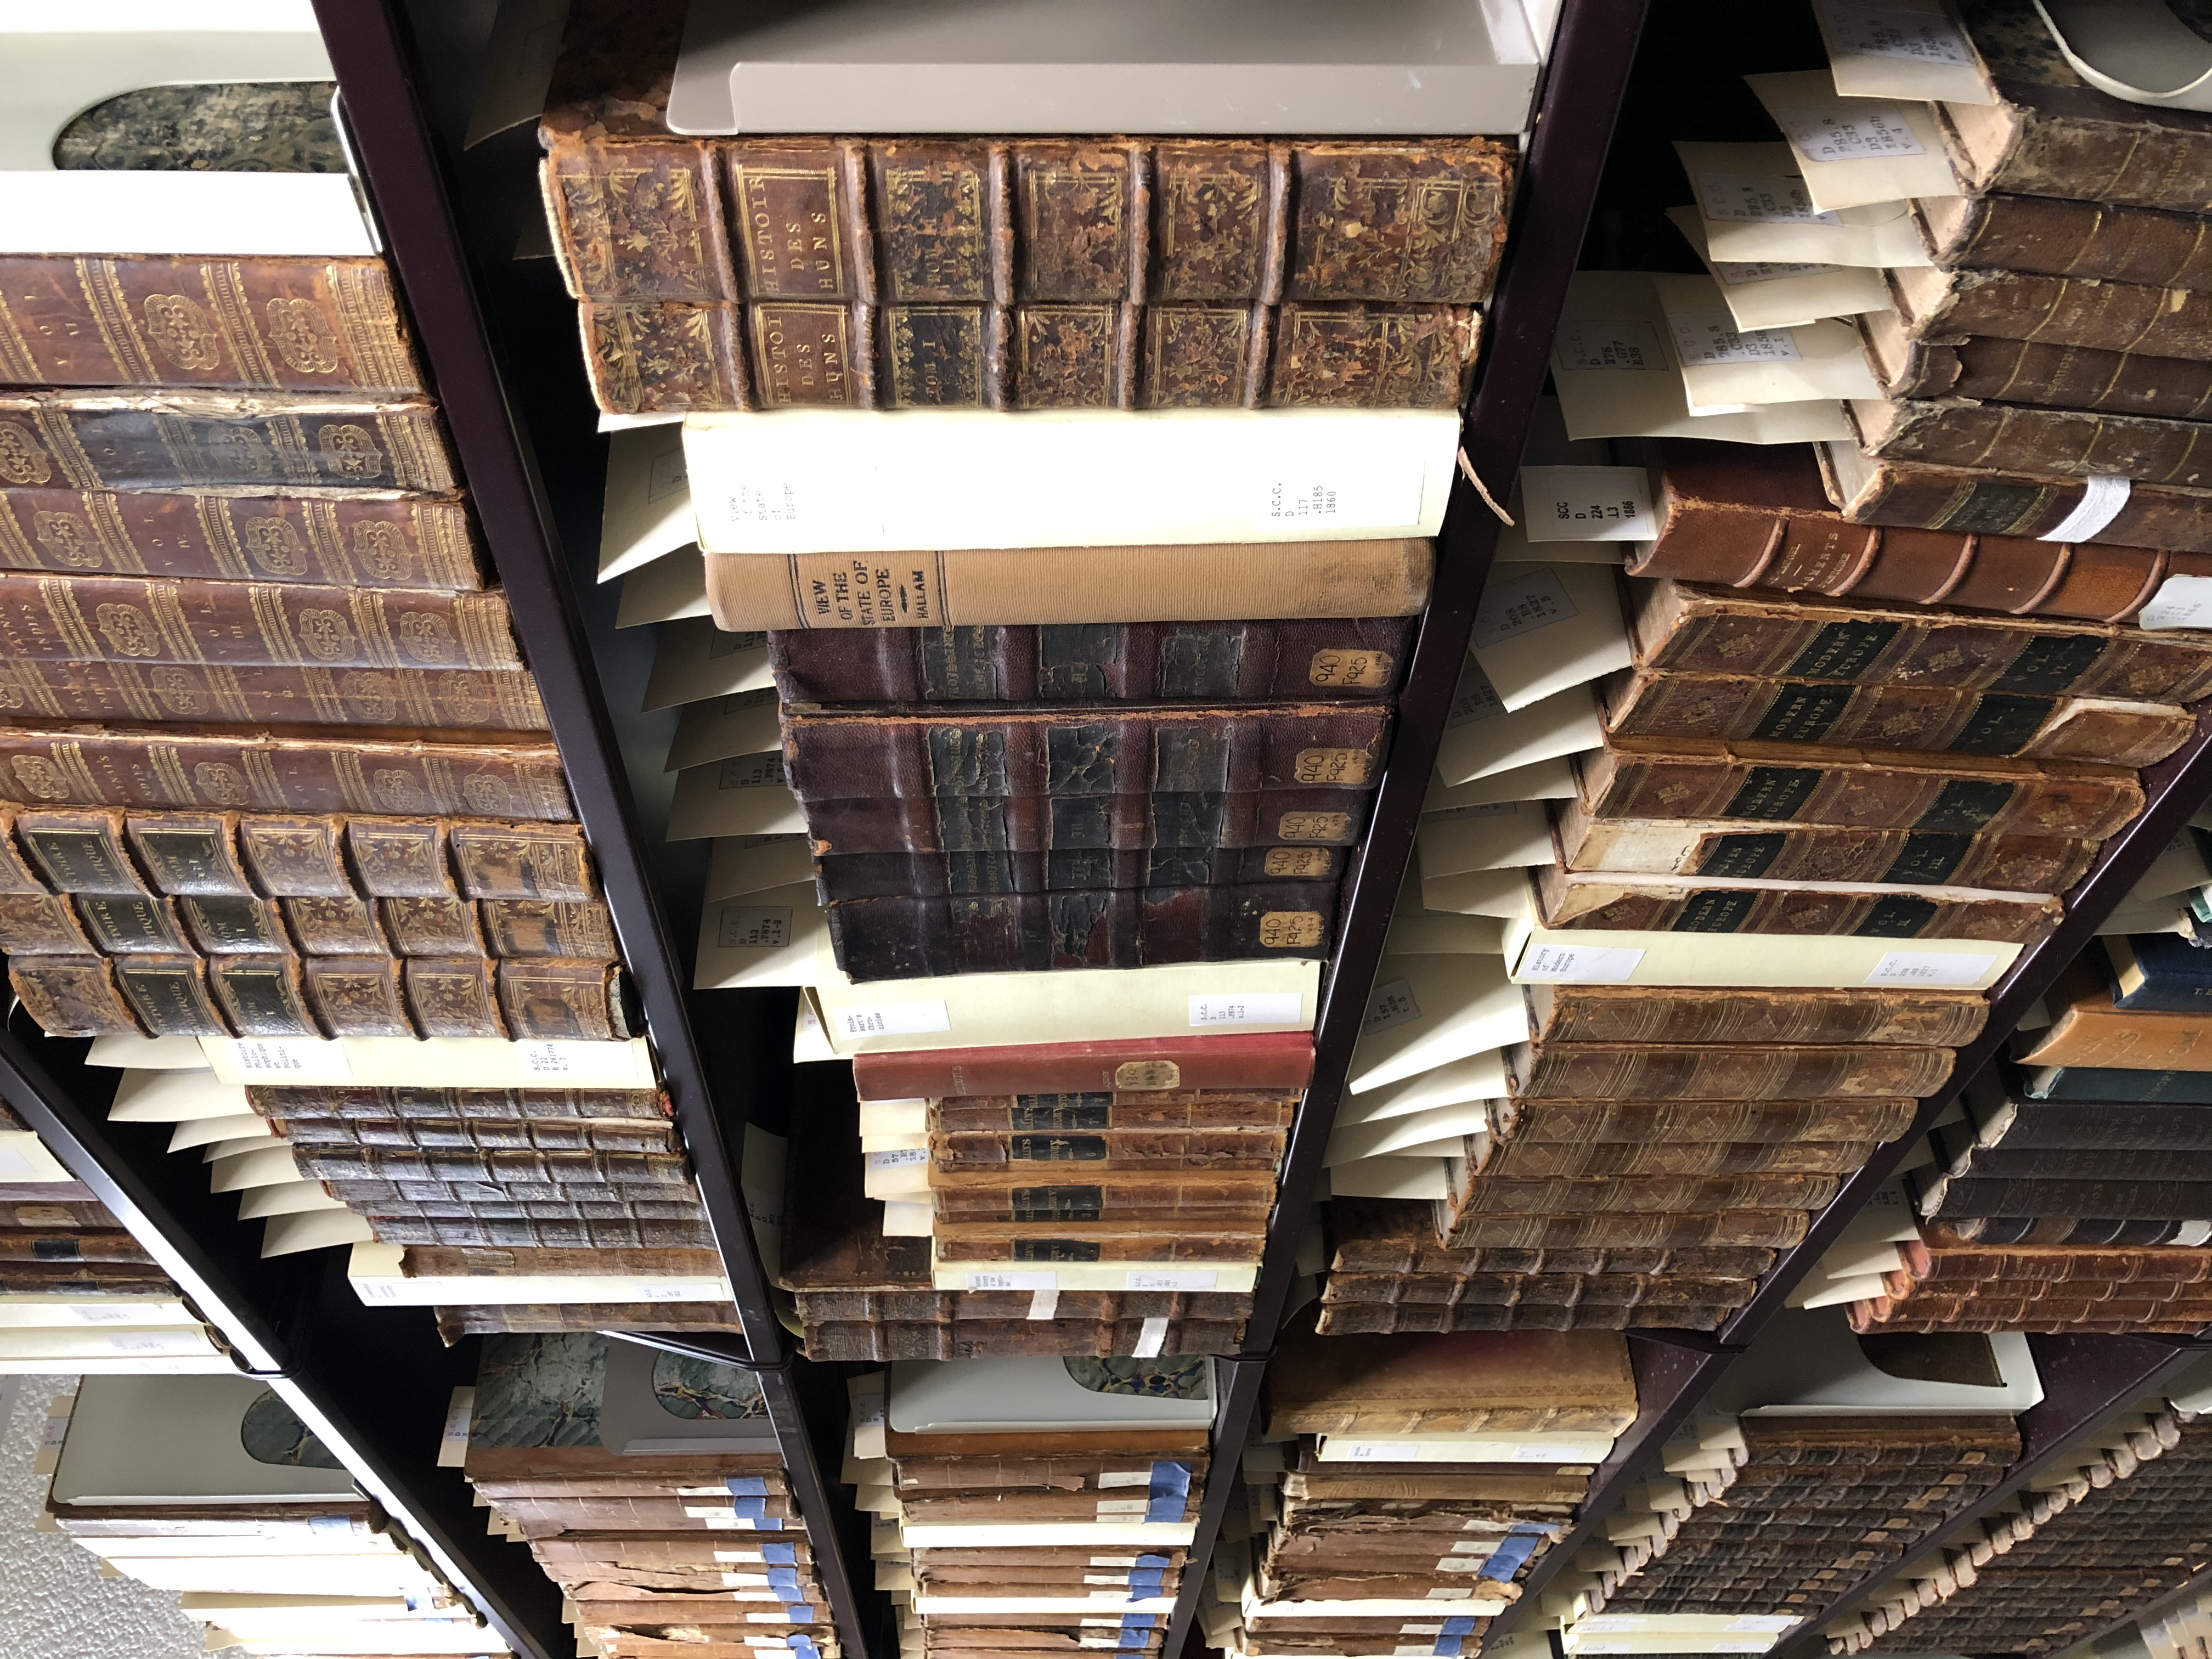 Rare books on shelves in Archives storage